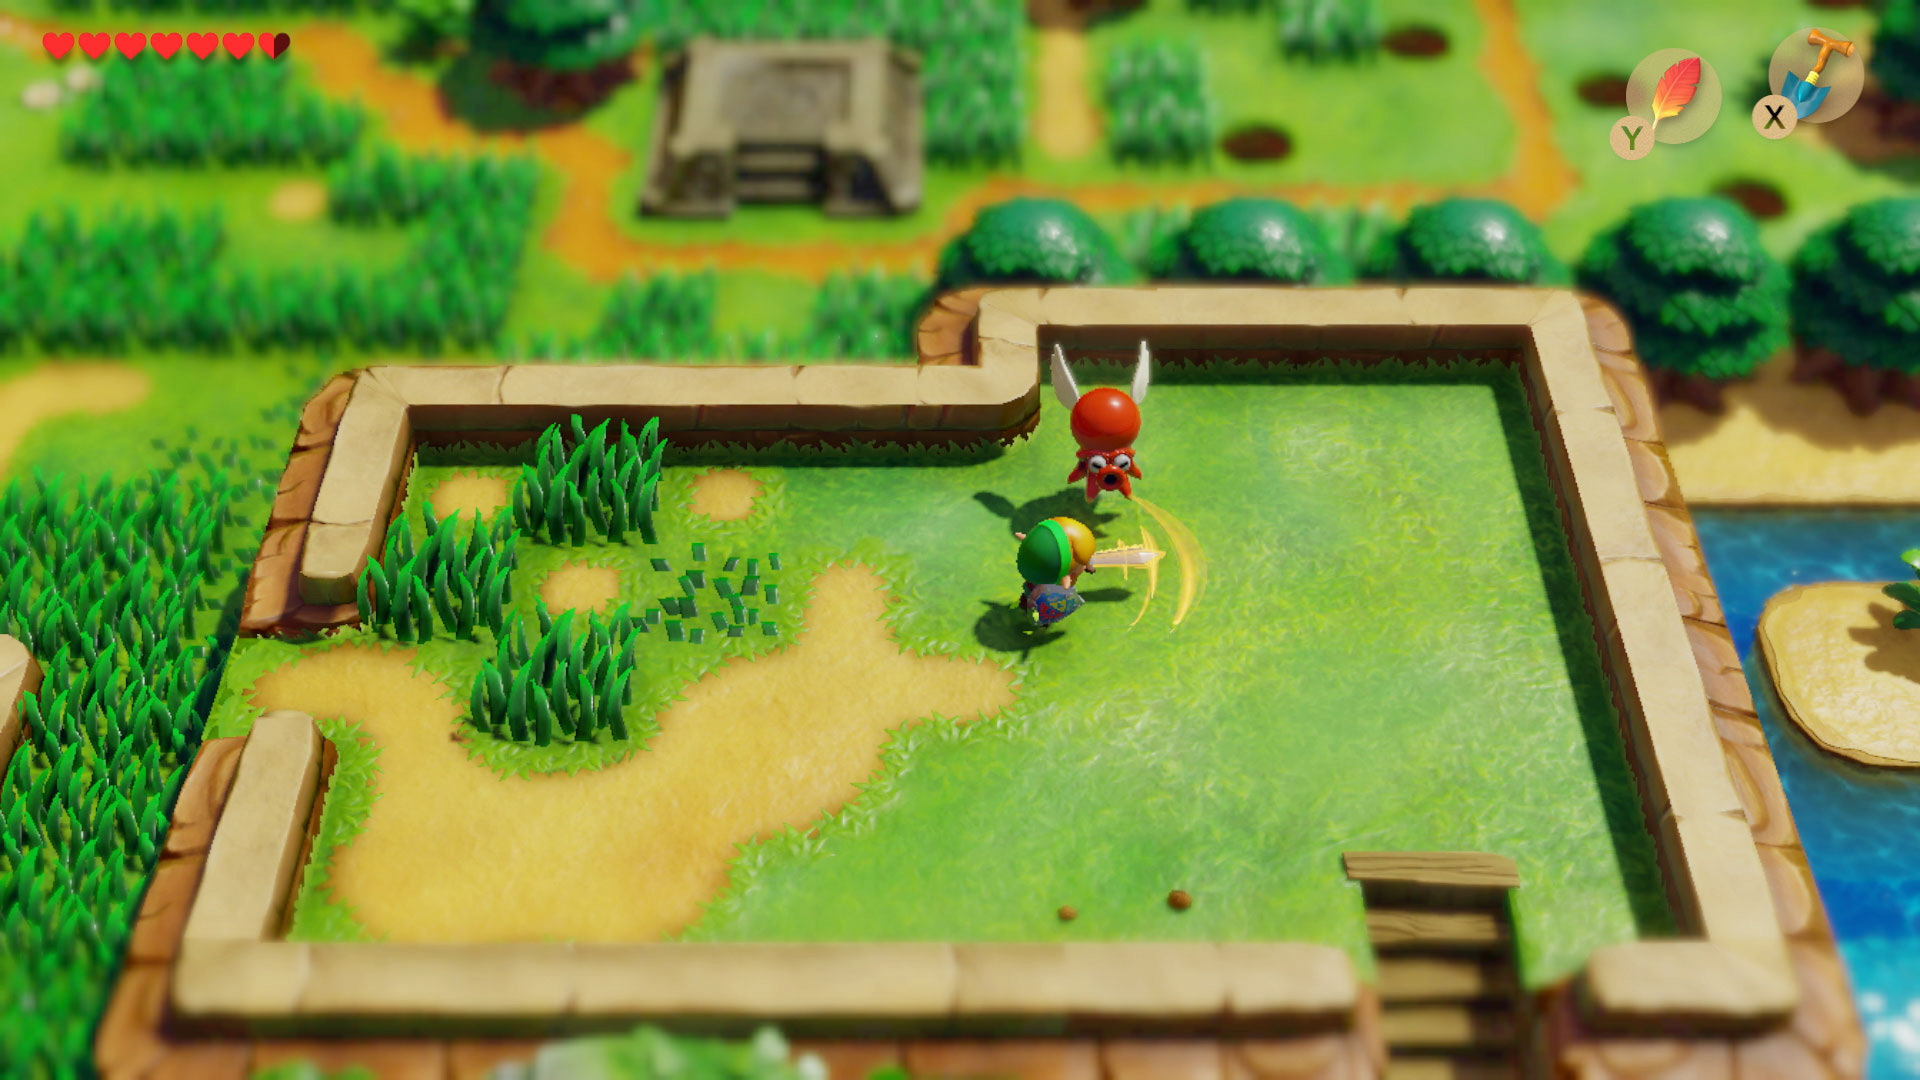 Quelle: Nintendo - The Legend of Zelda: Link's Awakening